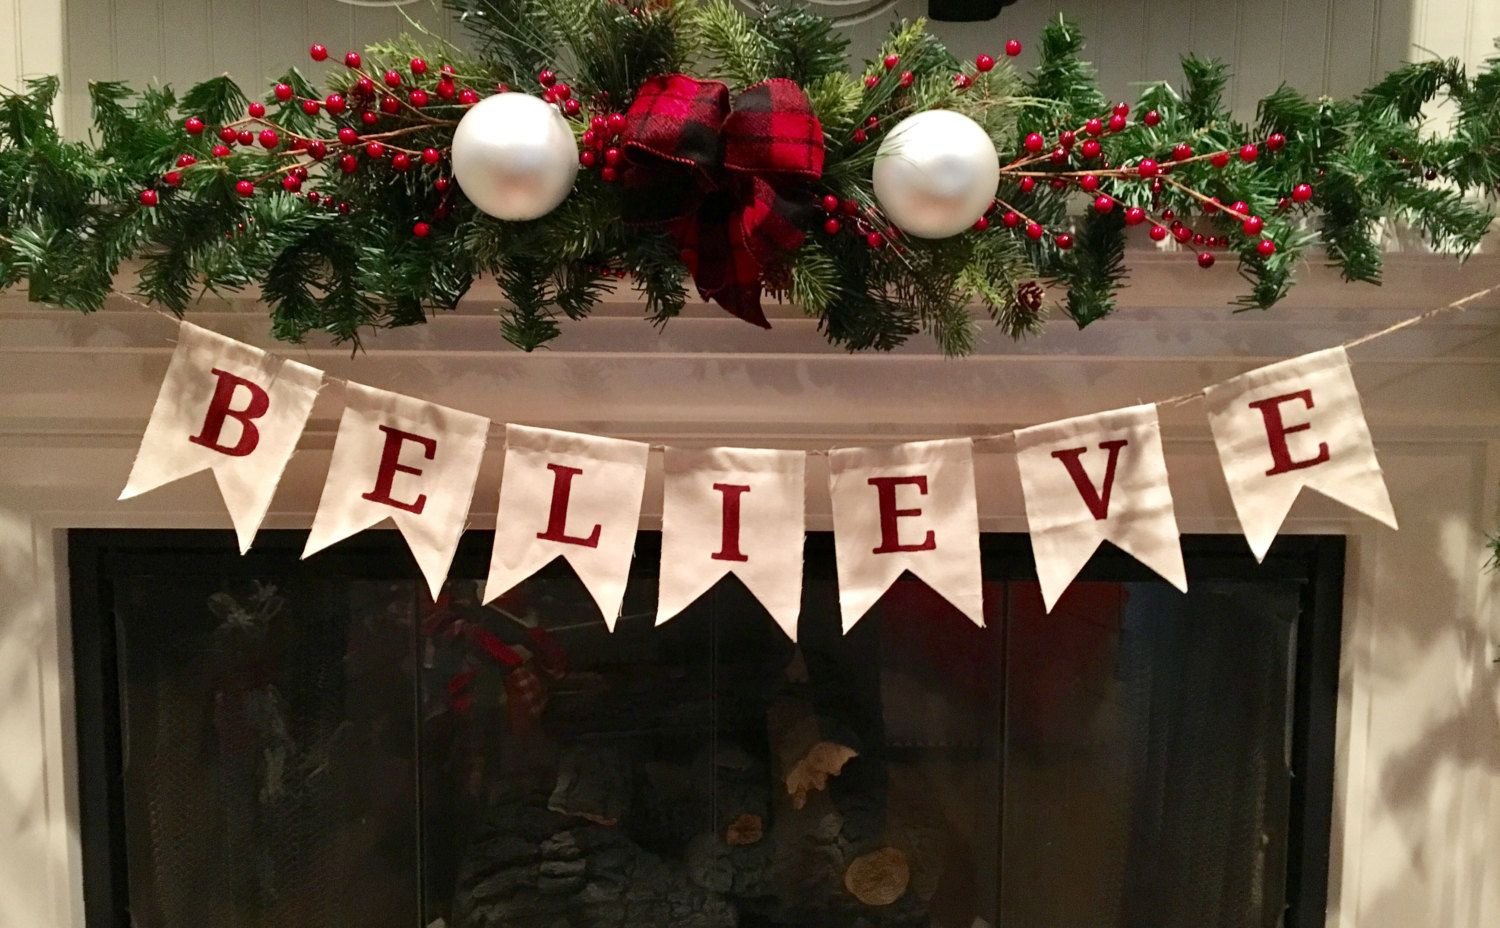 Believe Canvas Flag Banner Christmas Banner Holiday Banner